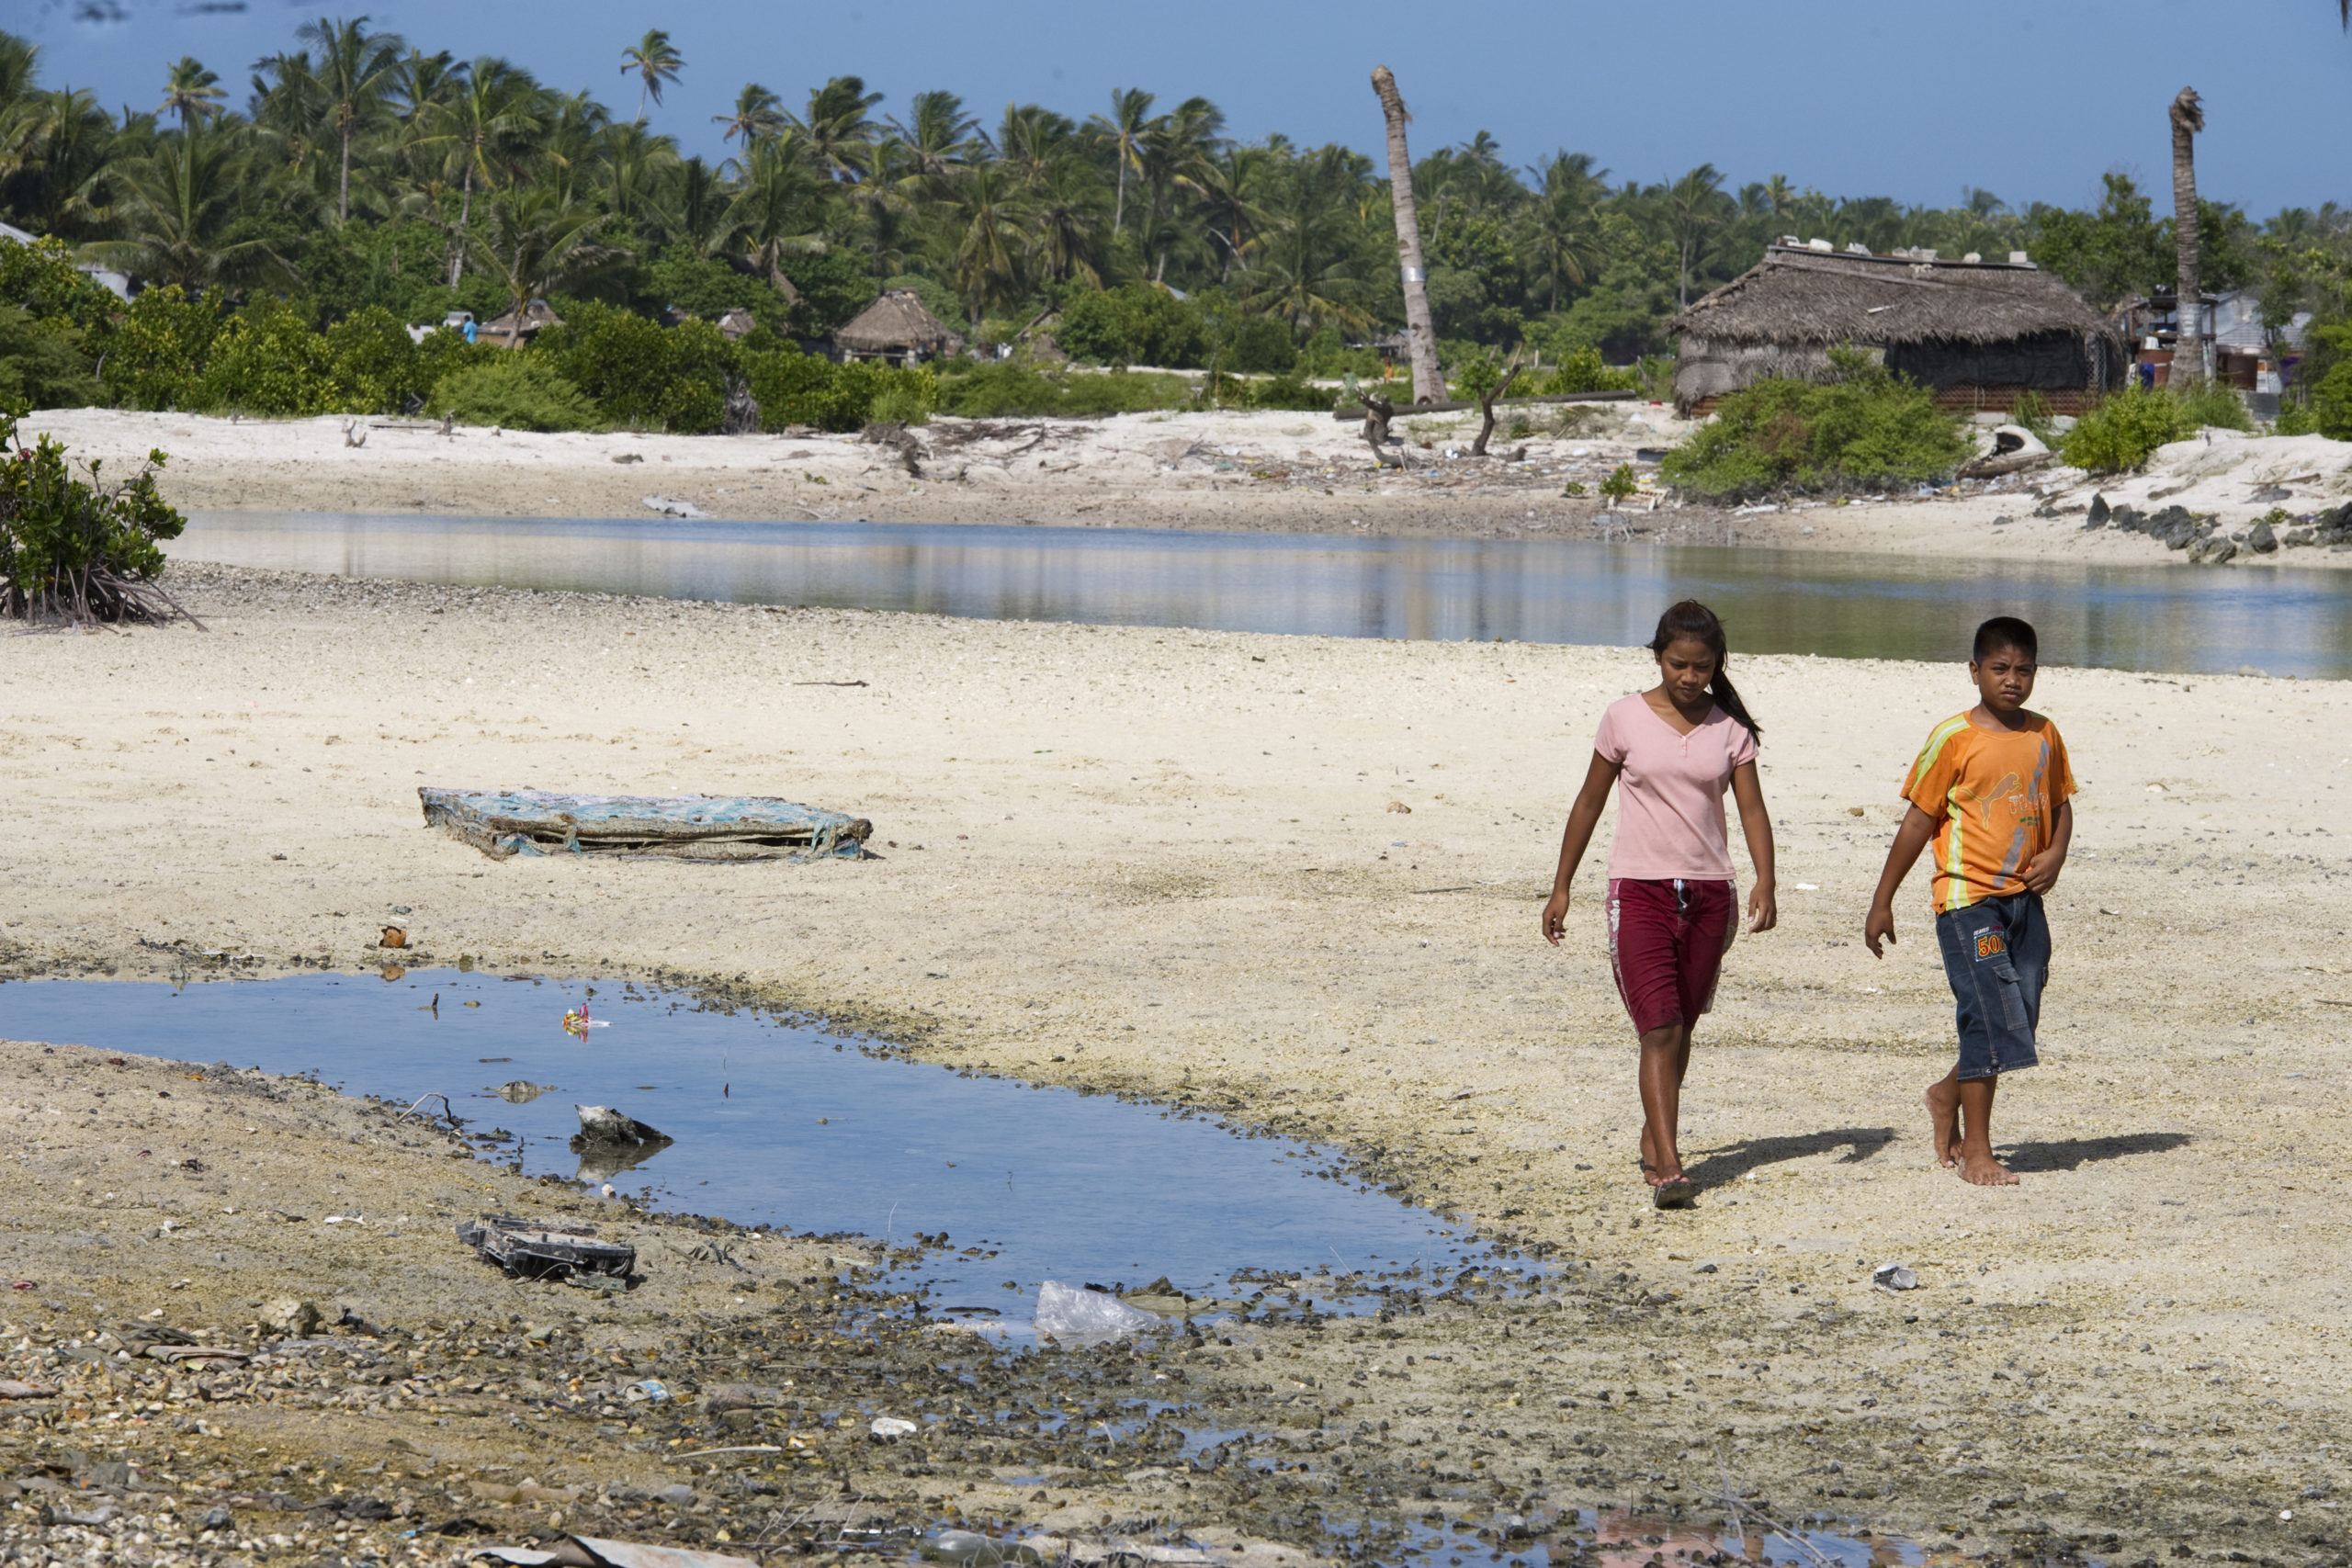 Locals in Tebikenikora, a village in the Pacific island nation of Kiribati, affected by climate change. Credit: UN Photo/Eskinder Debebe